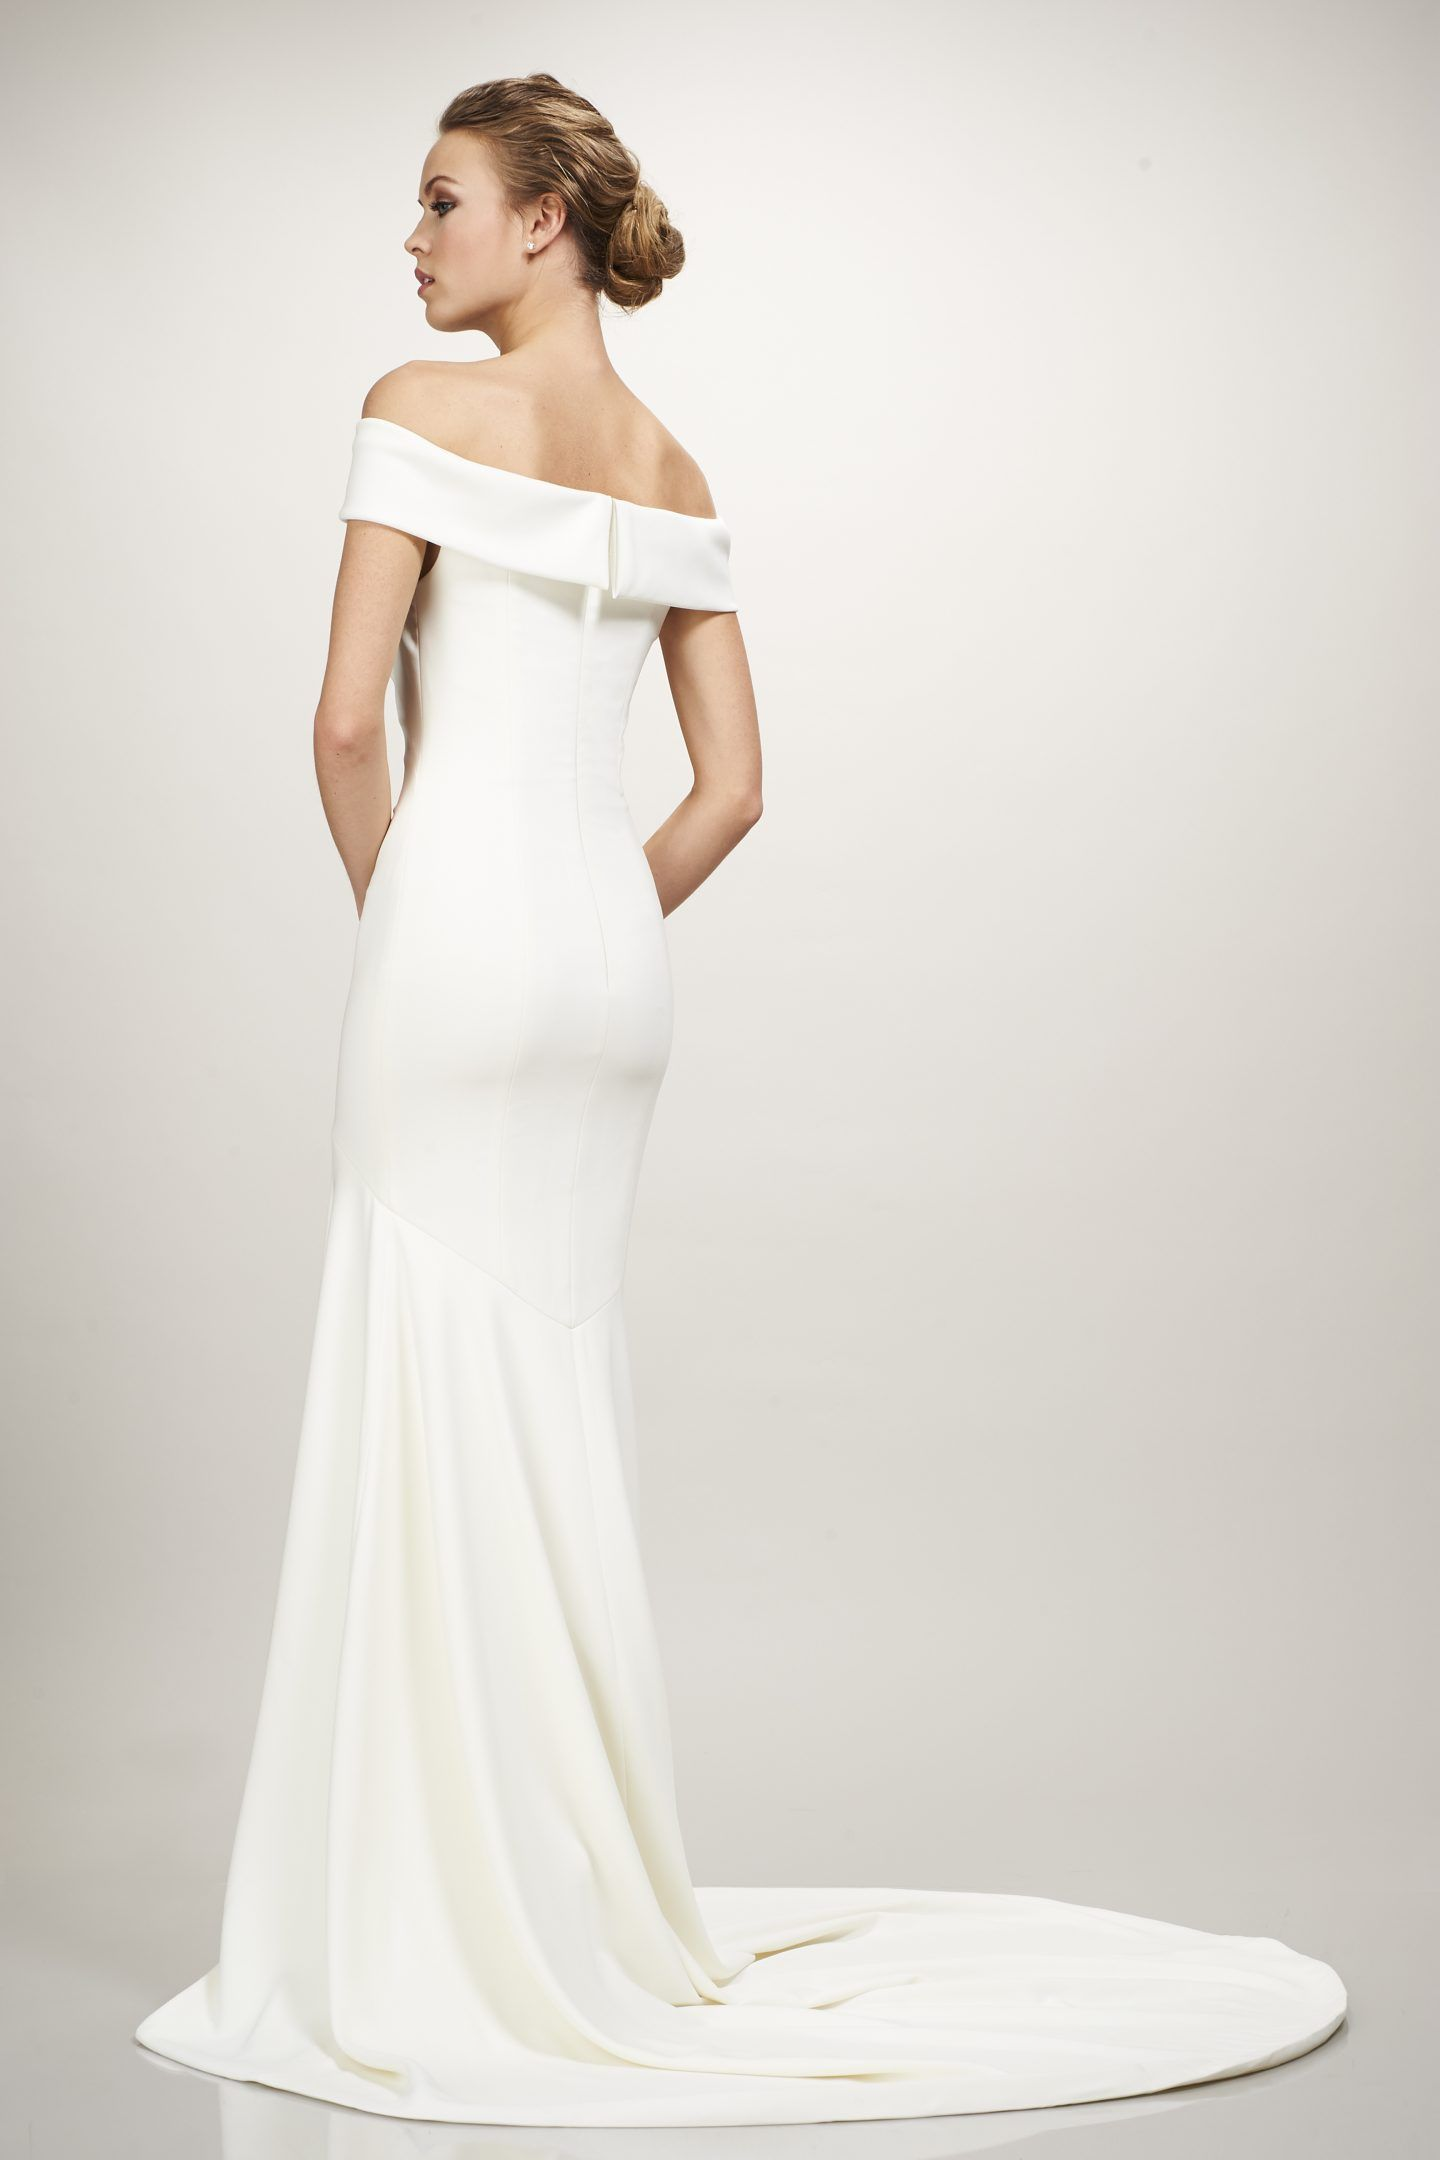 Theia Eve Gown - Available at Love and Lace